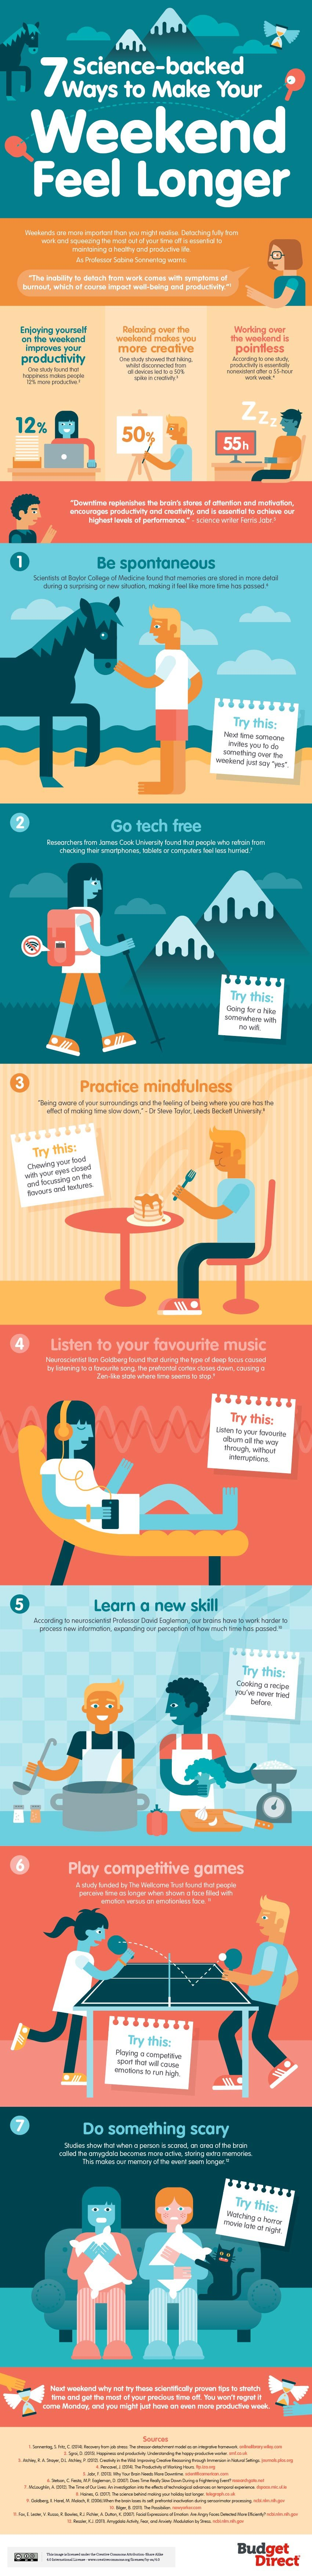 an infographic about making the weekend seem longer